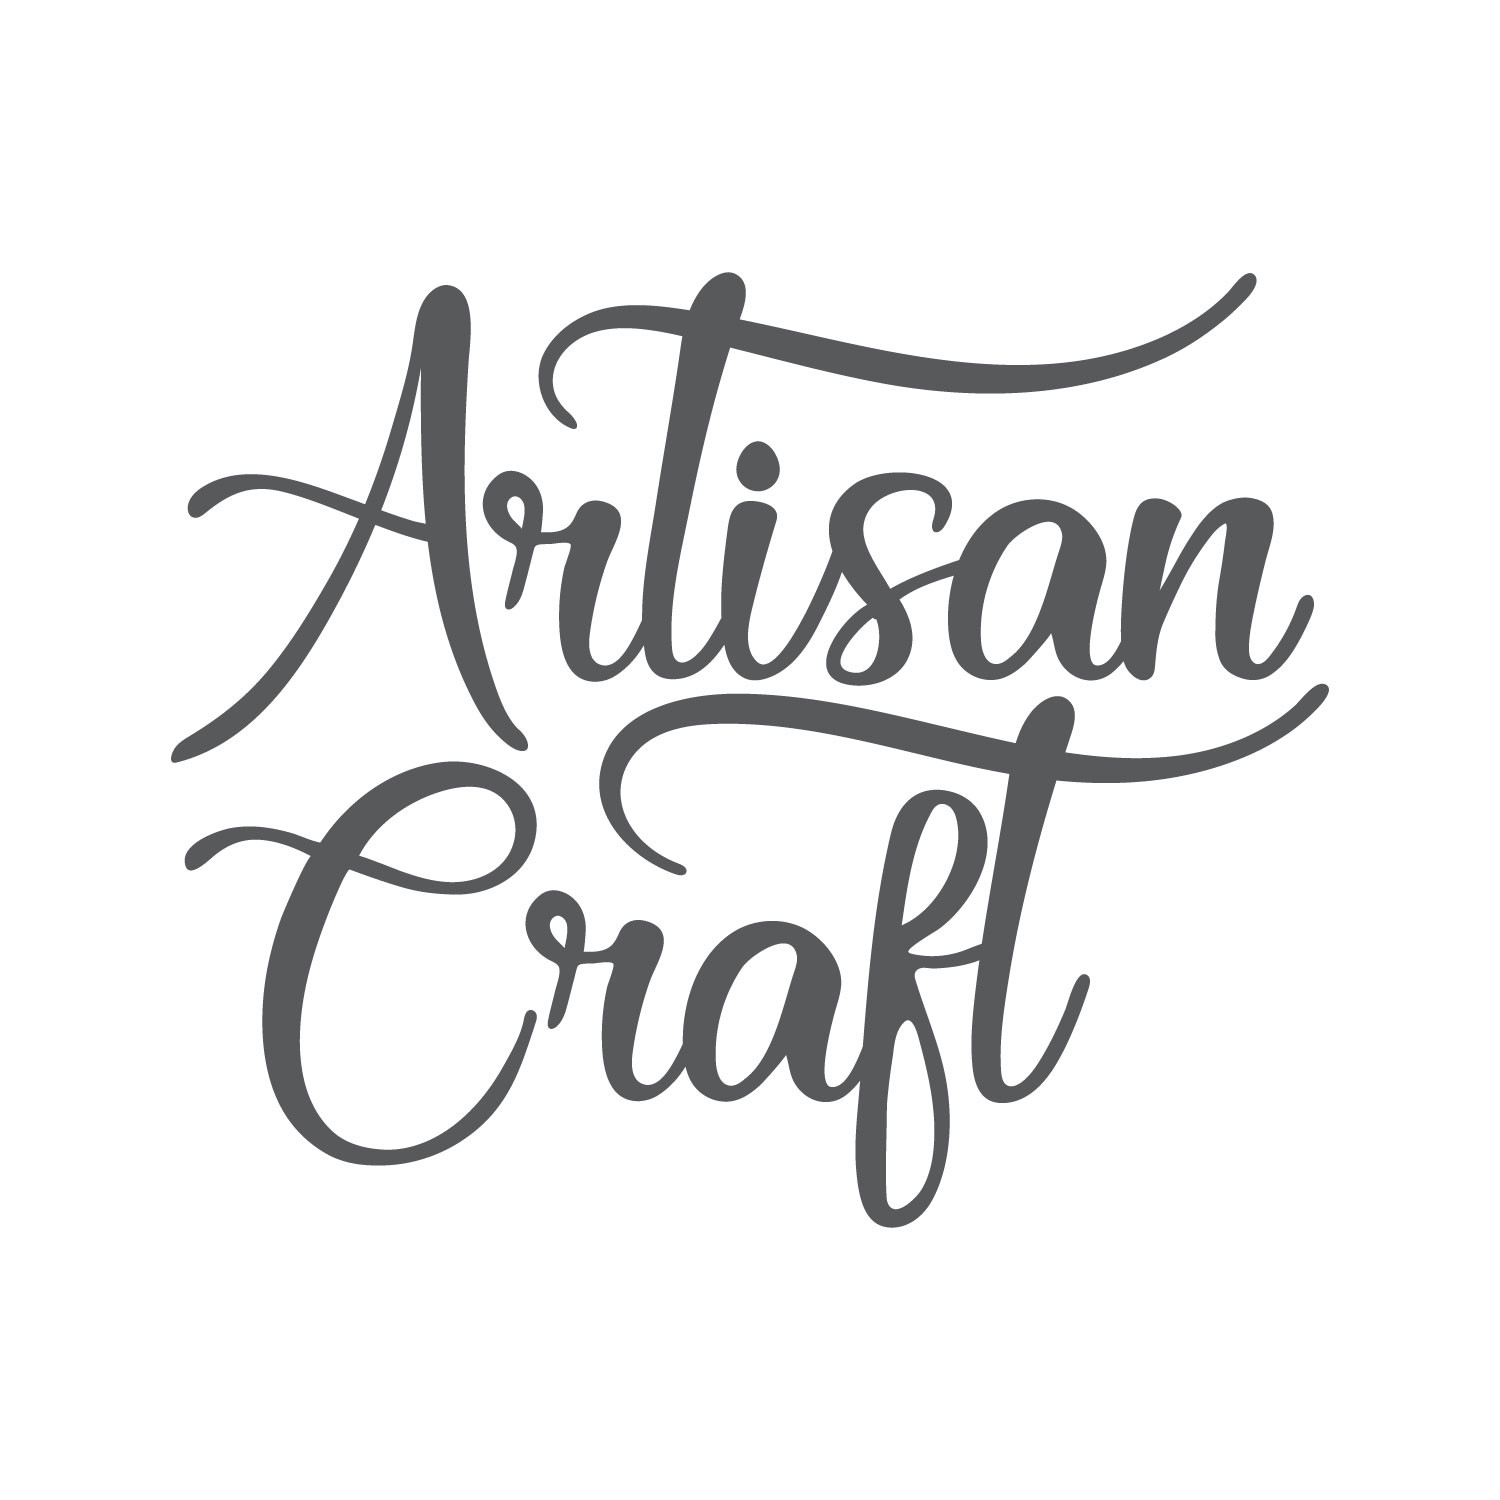 Artisan Craft SVG's profile picture